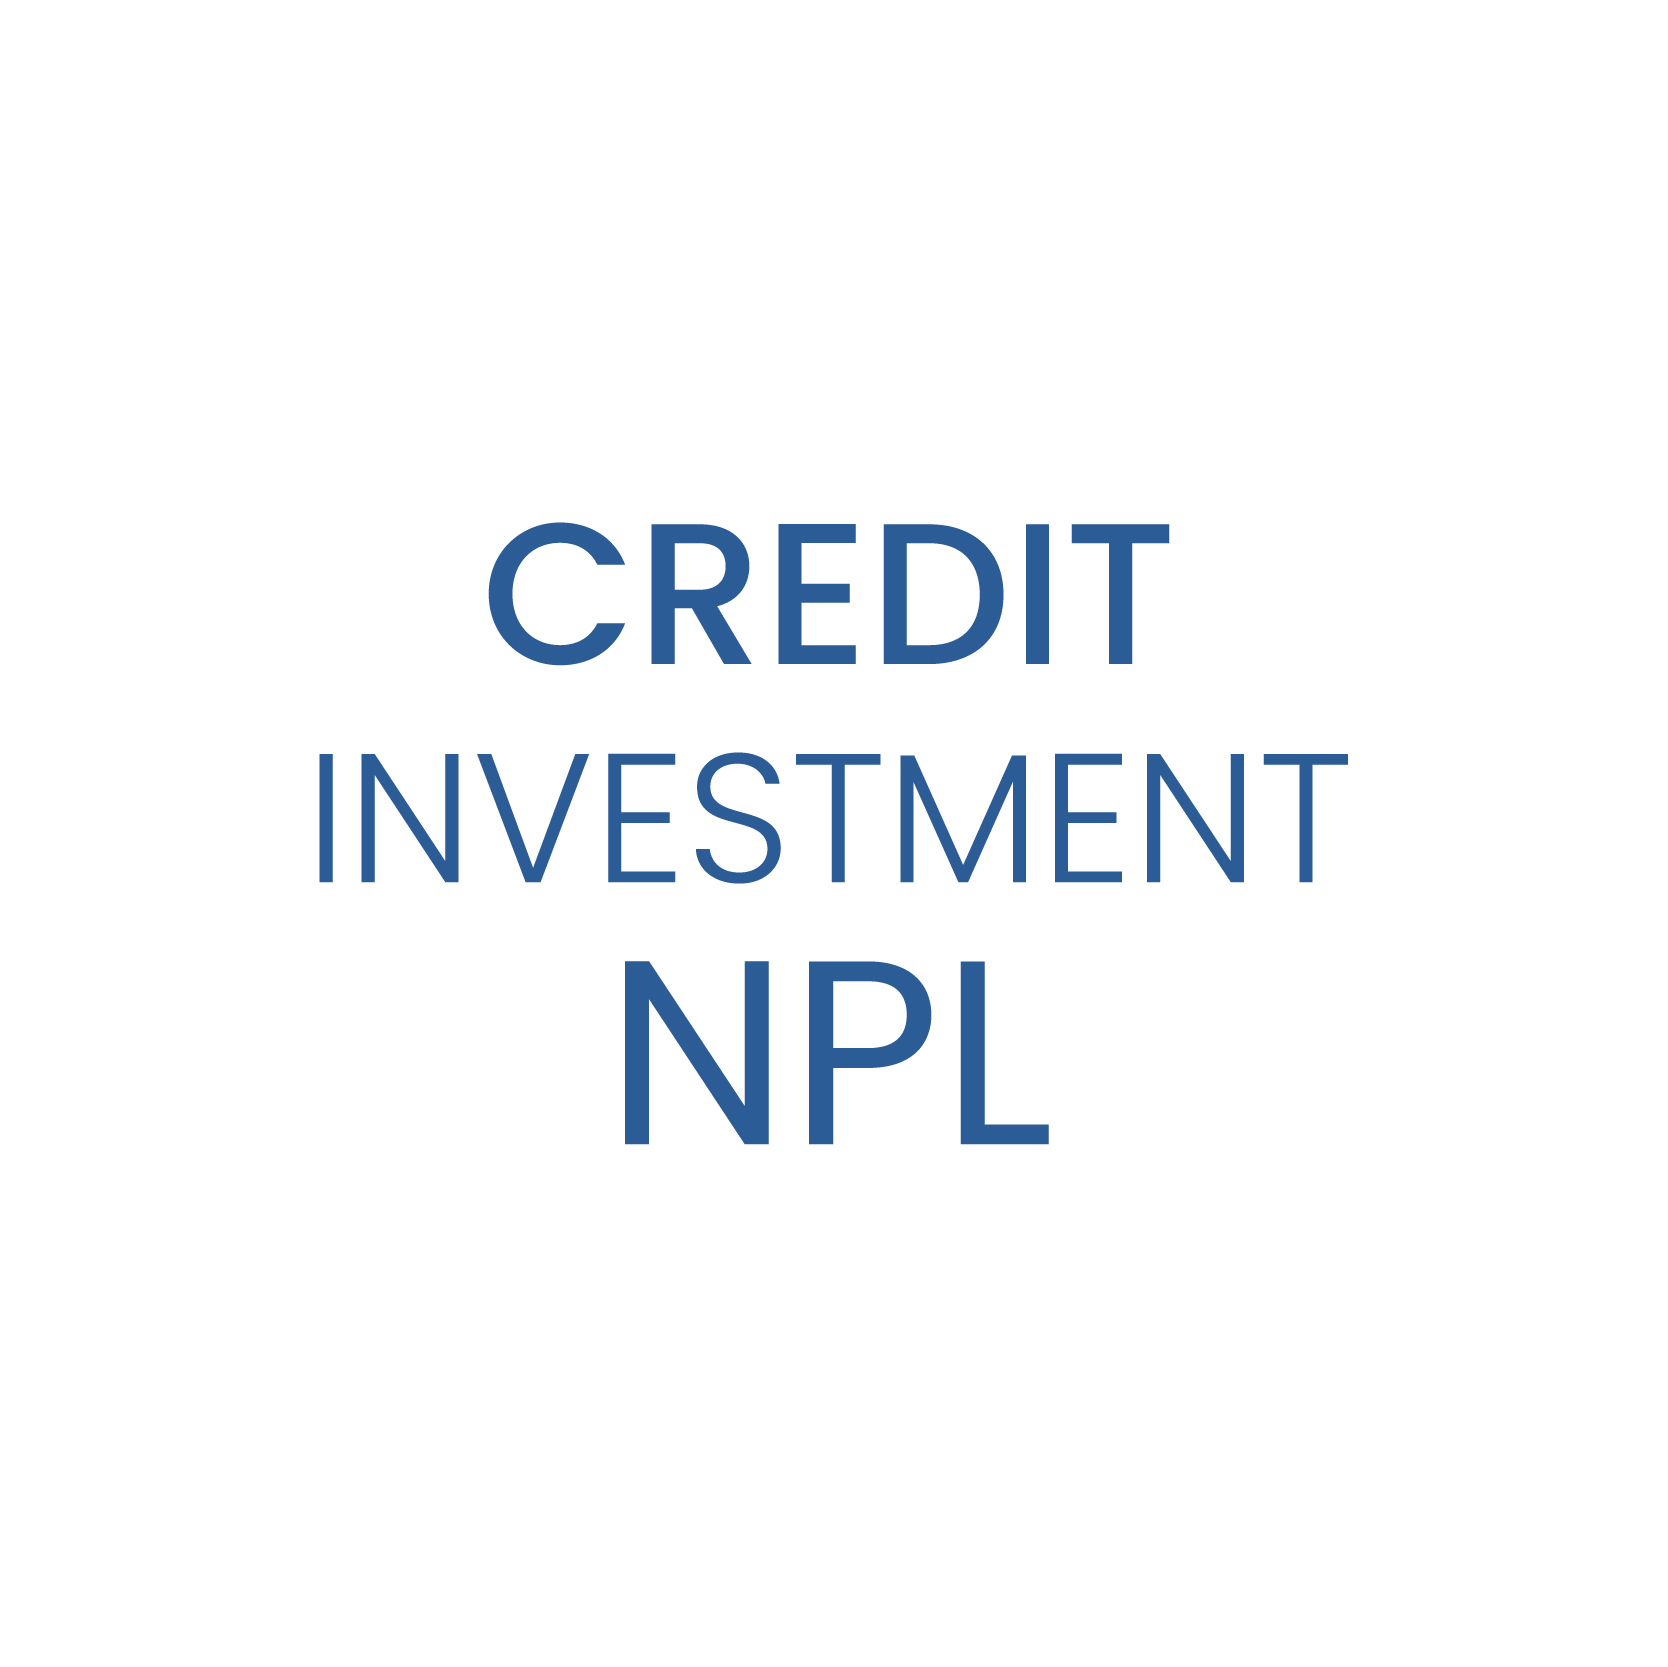 Credit Investment NPL